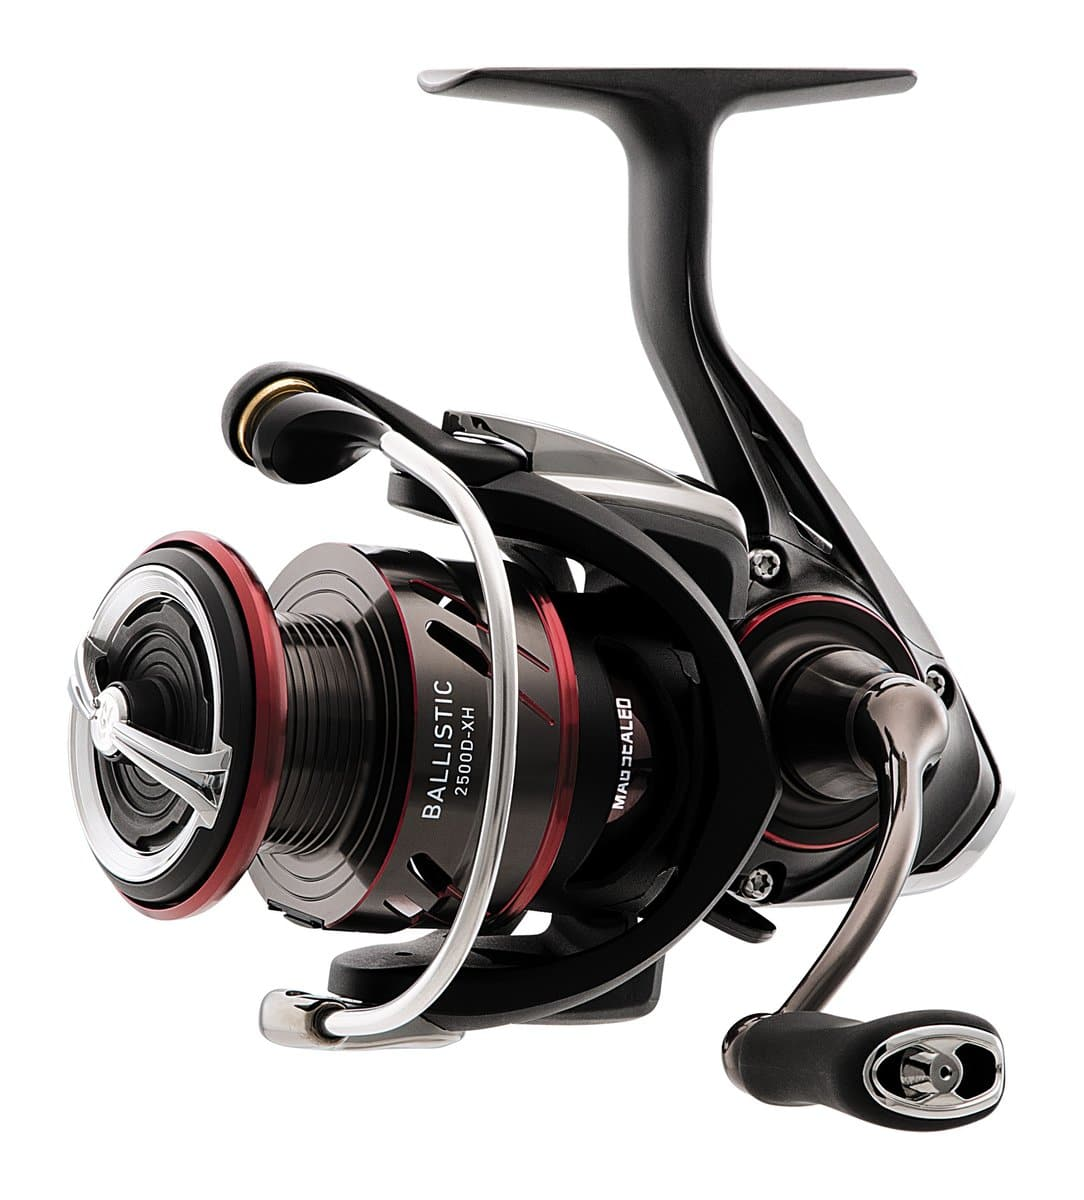 Daiwa Ballistic LT Freshwater Left/Right Hand Spinning Reel Review